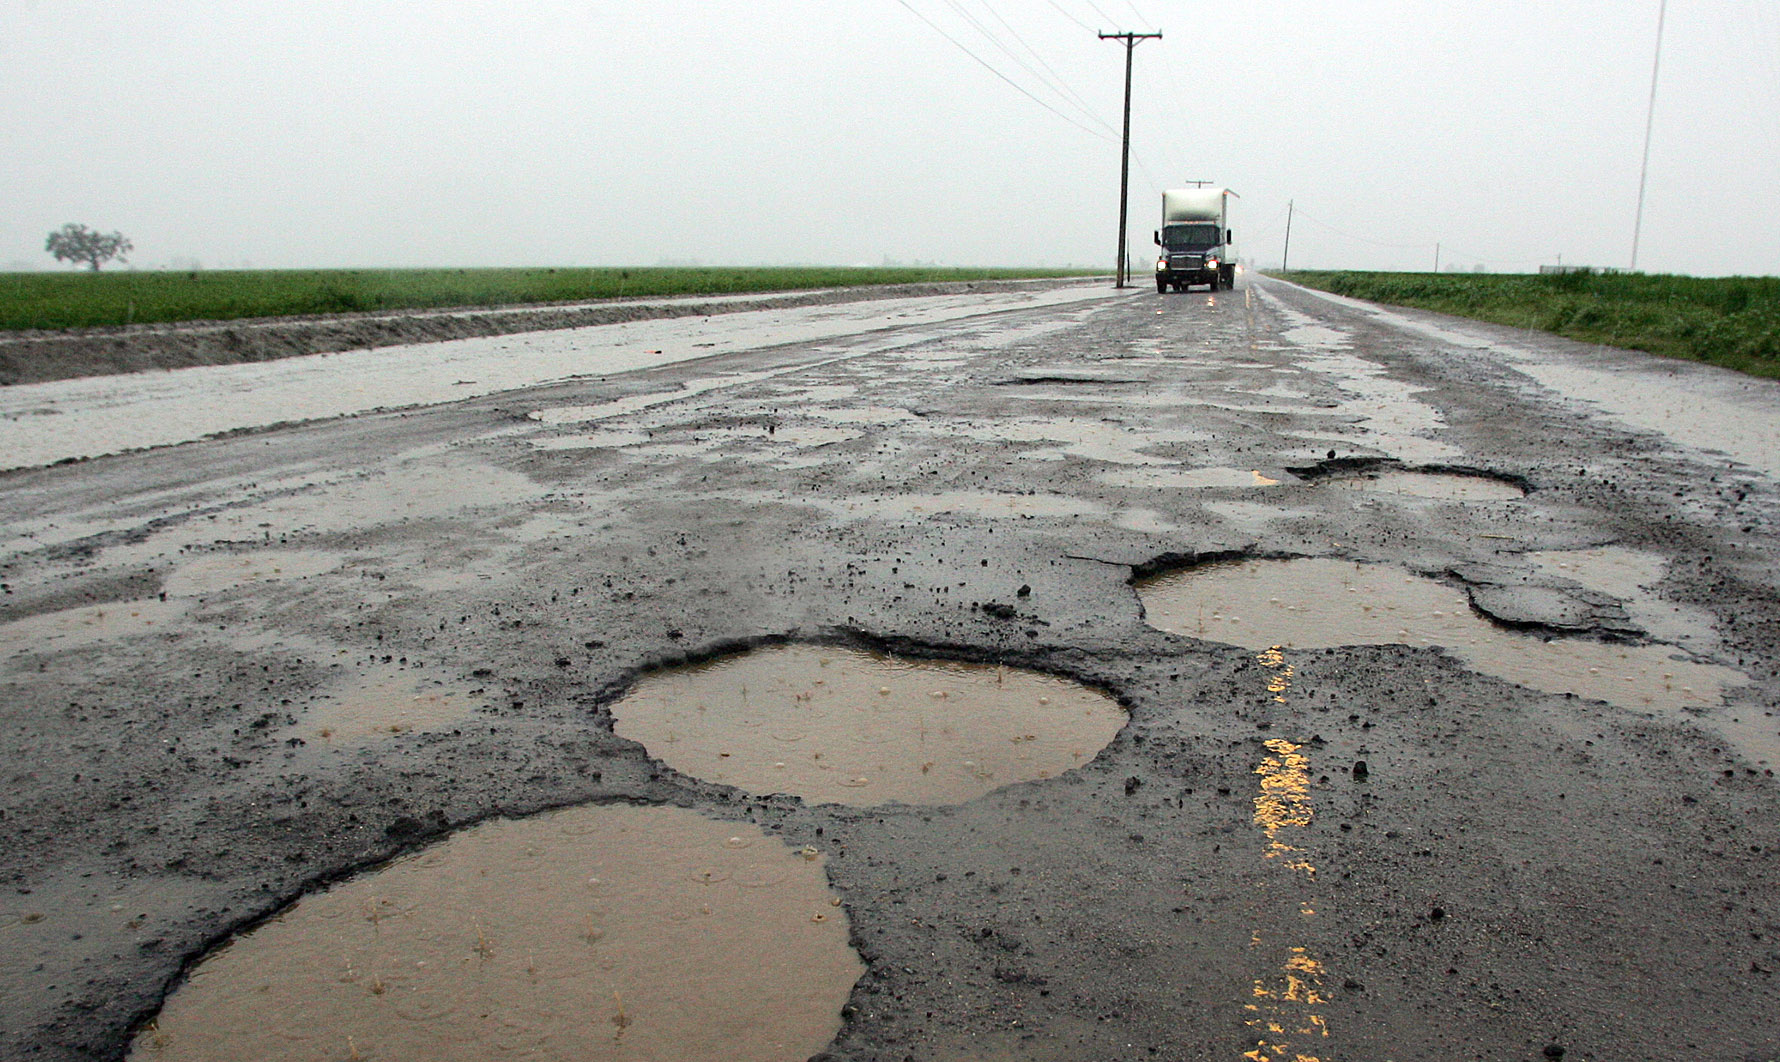 Potholes are visible on a farming back road in Tulare, California.